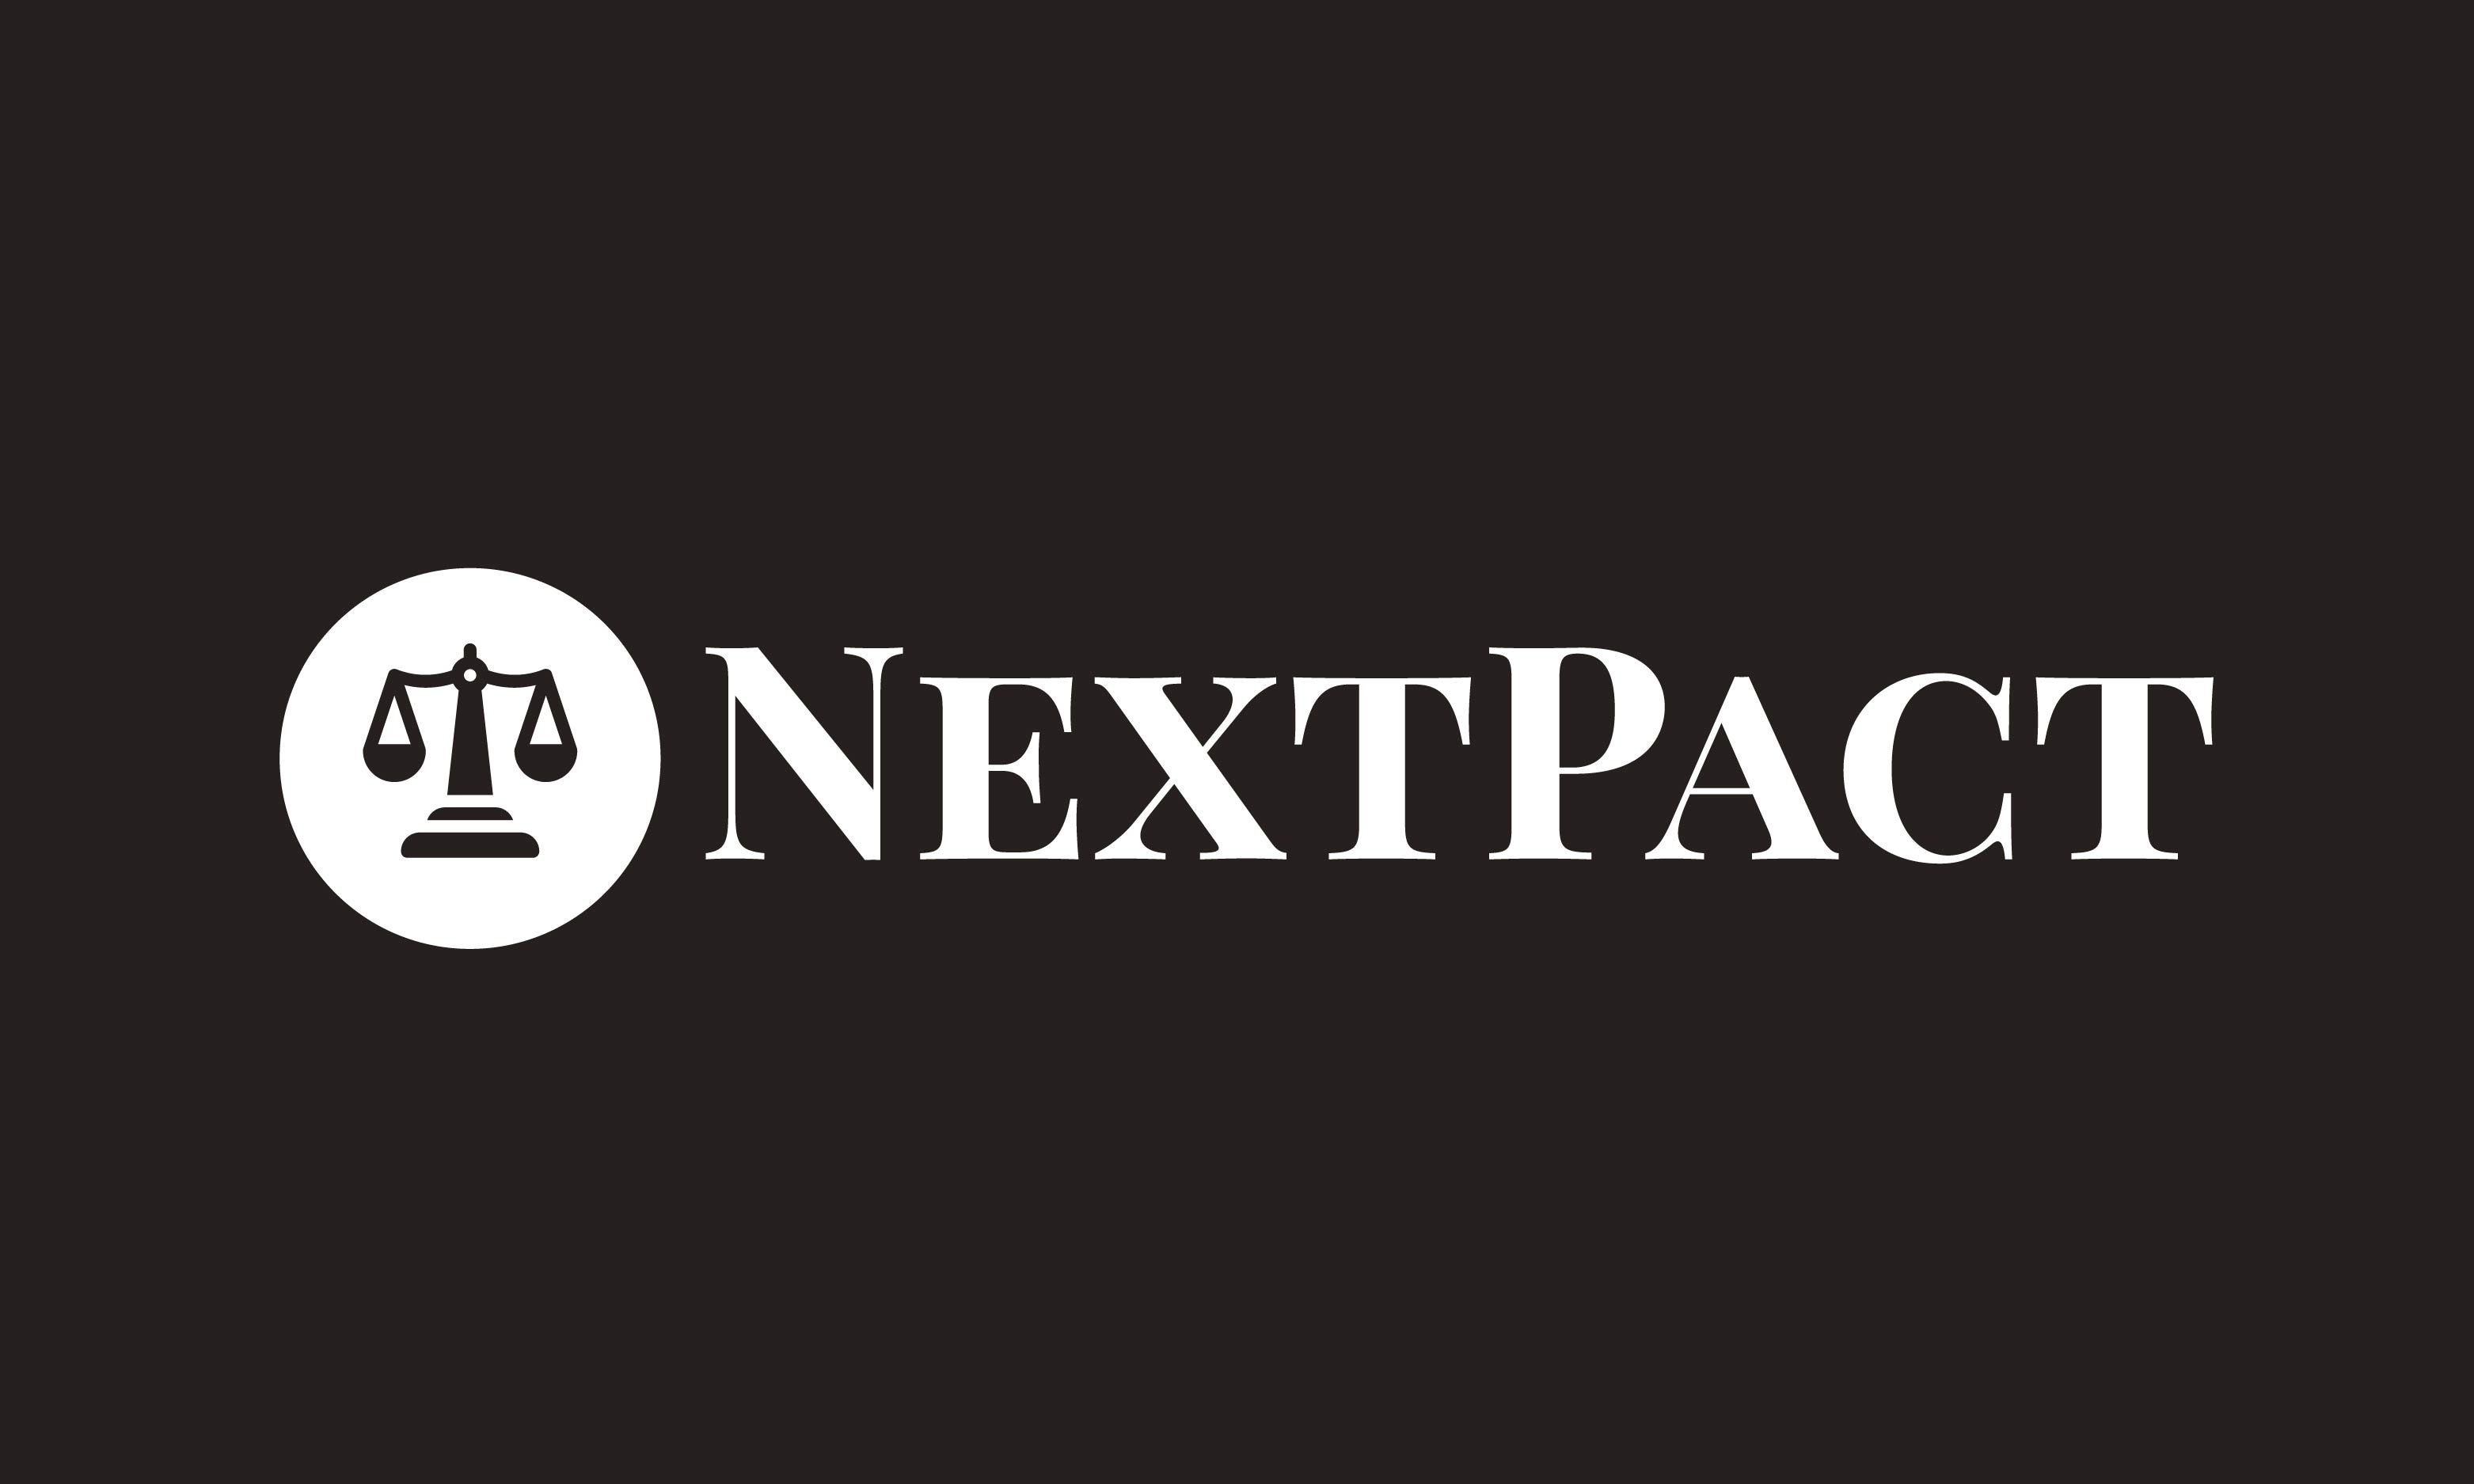 NextPact is for sale at Squadhelp com!